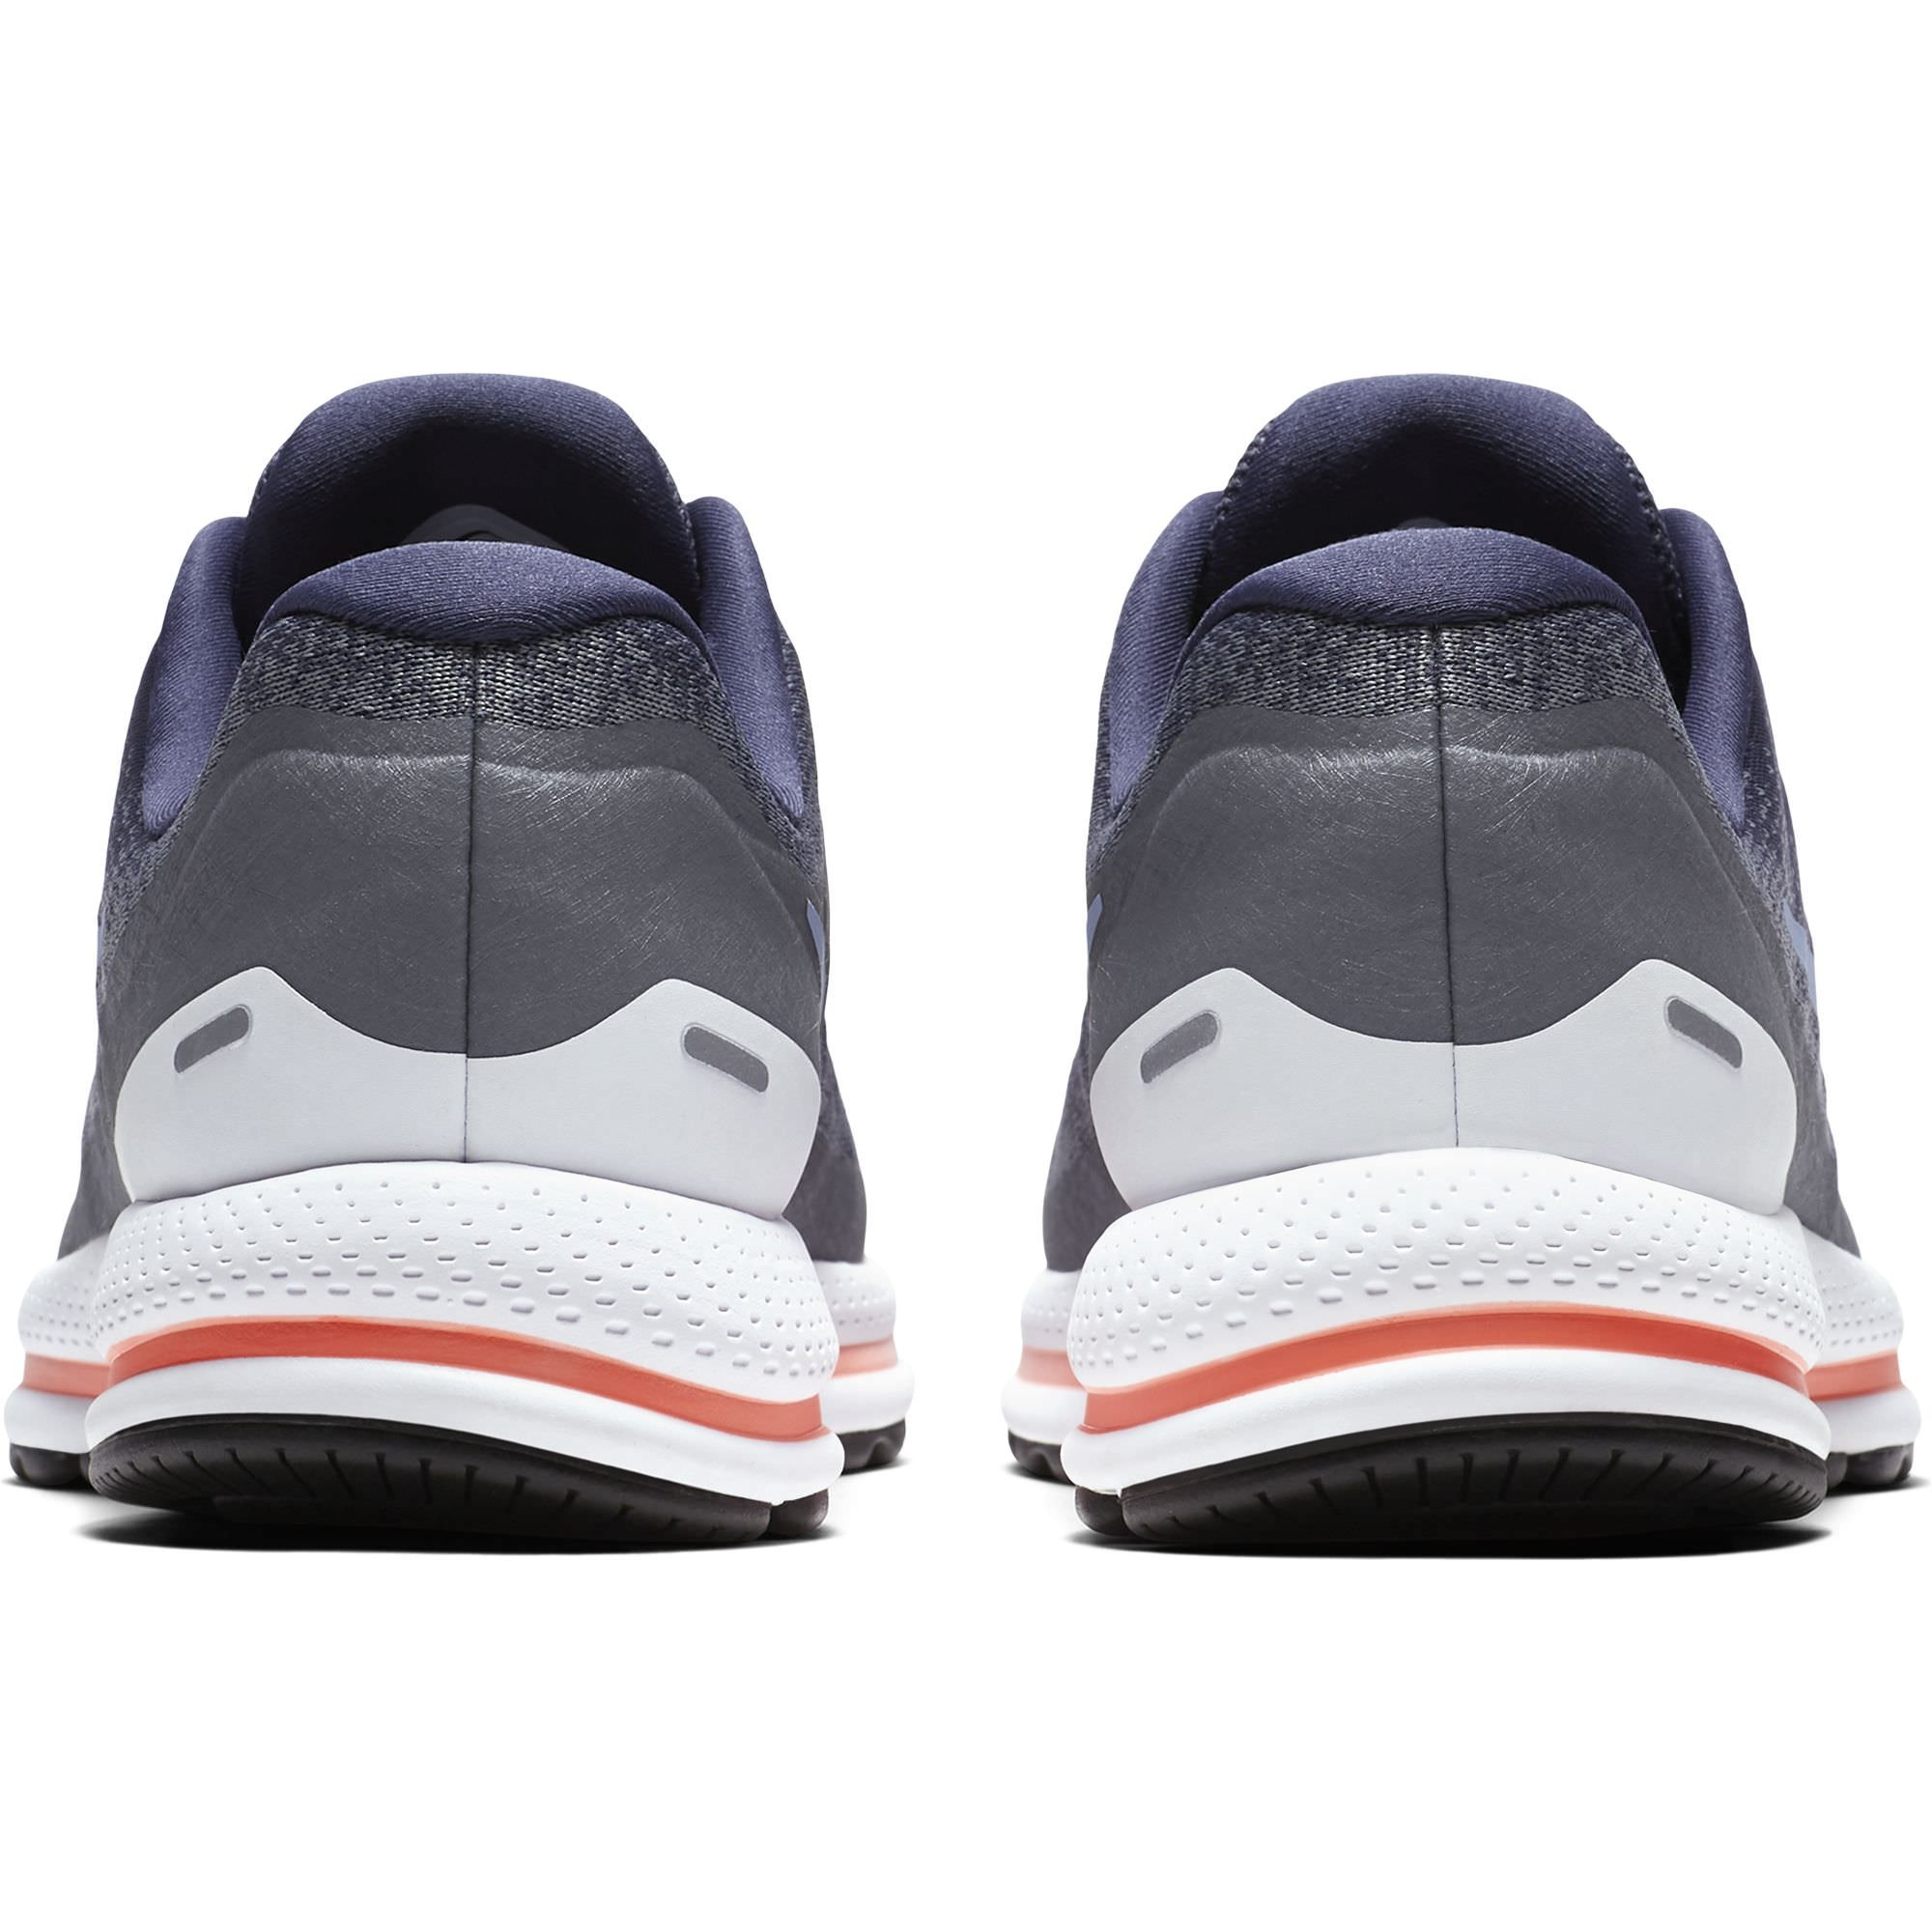 a8ba633df38c6 NIKE Mens Air Zoom Vomero 13 Running Shoes Thunder Blue Cirrus Blue 9 -  922908 400   Road Running   Clothing